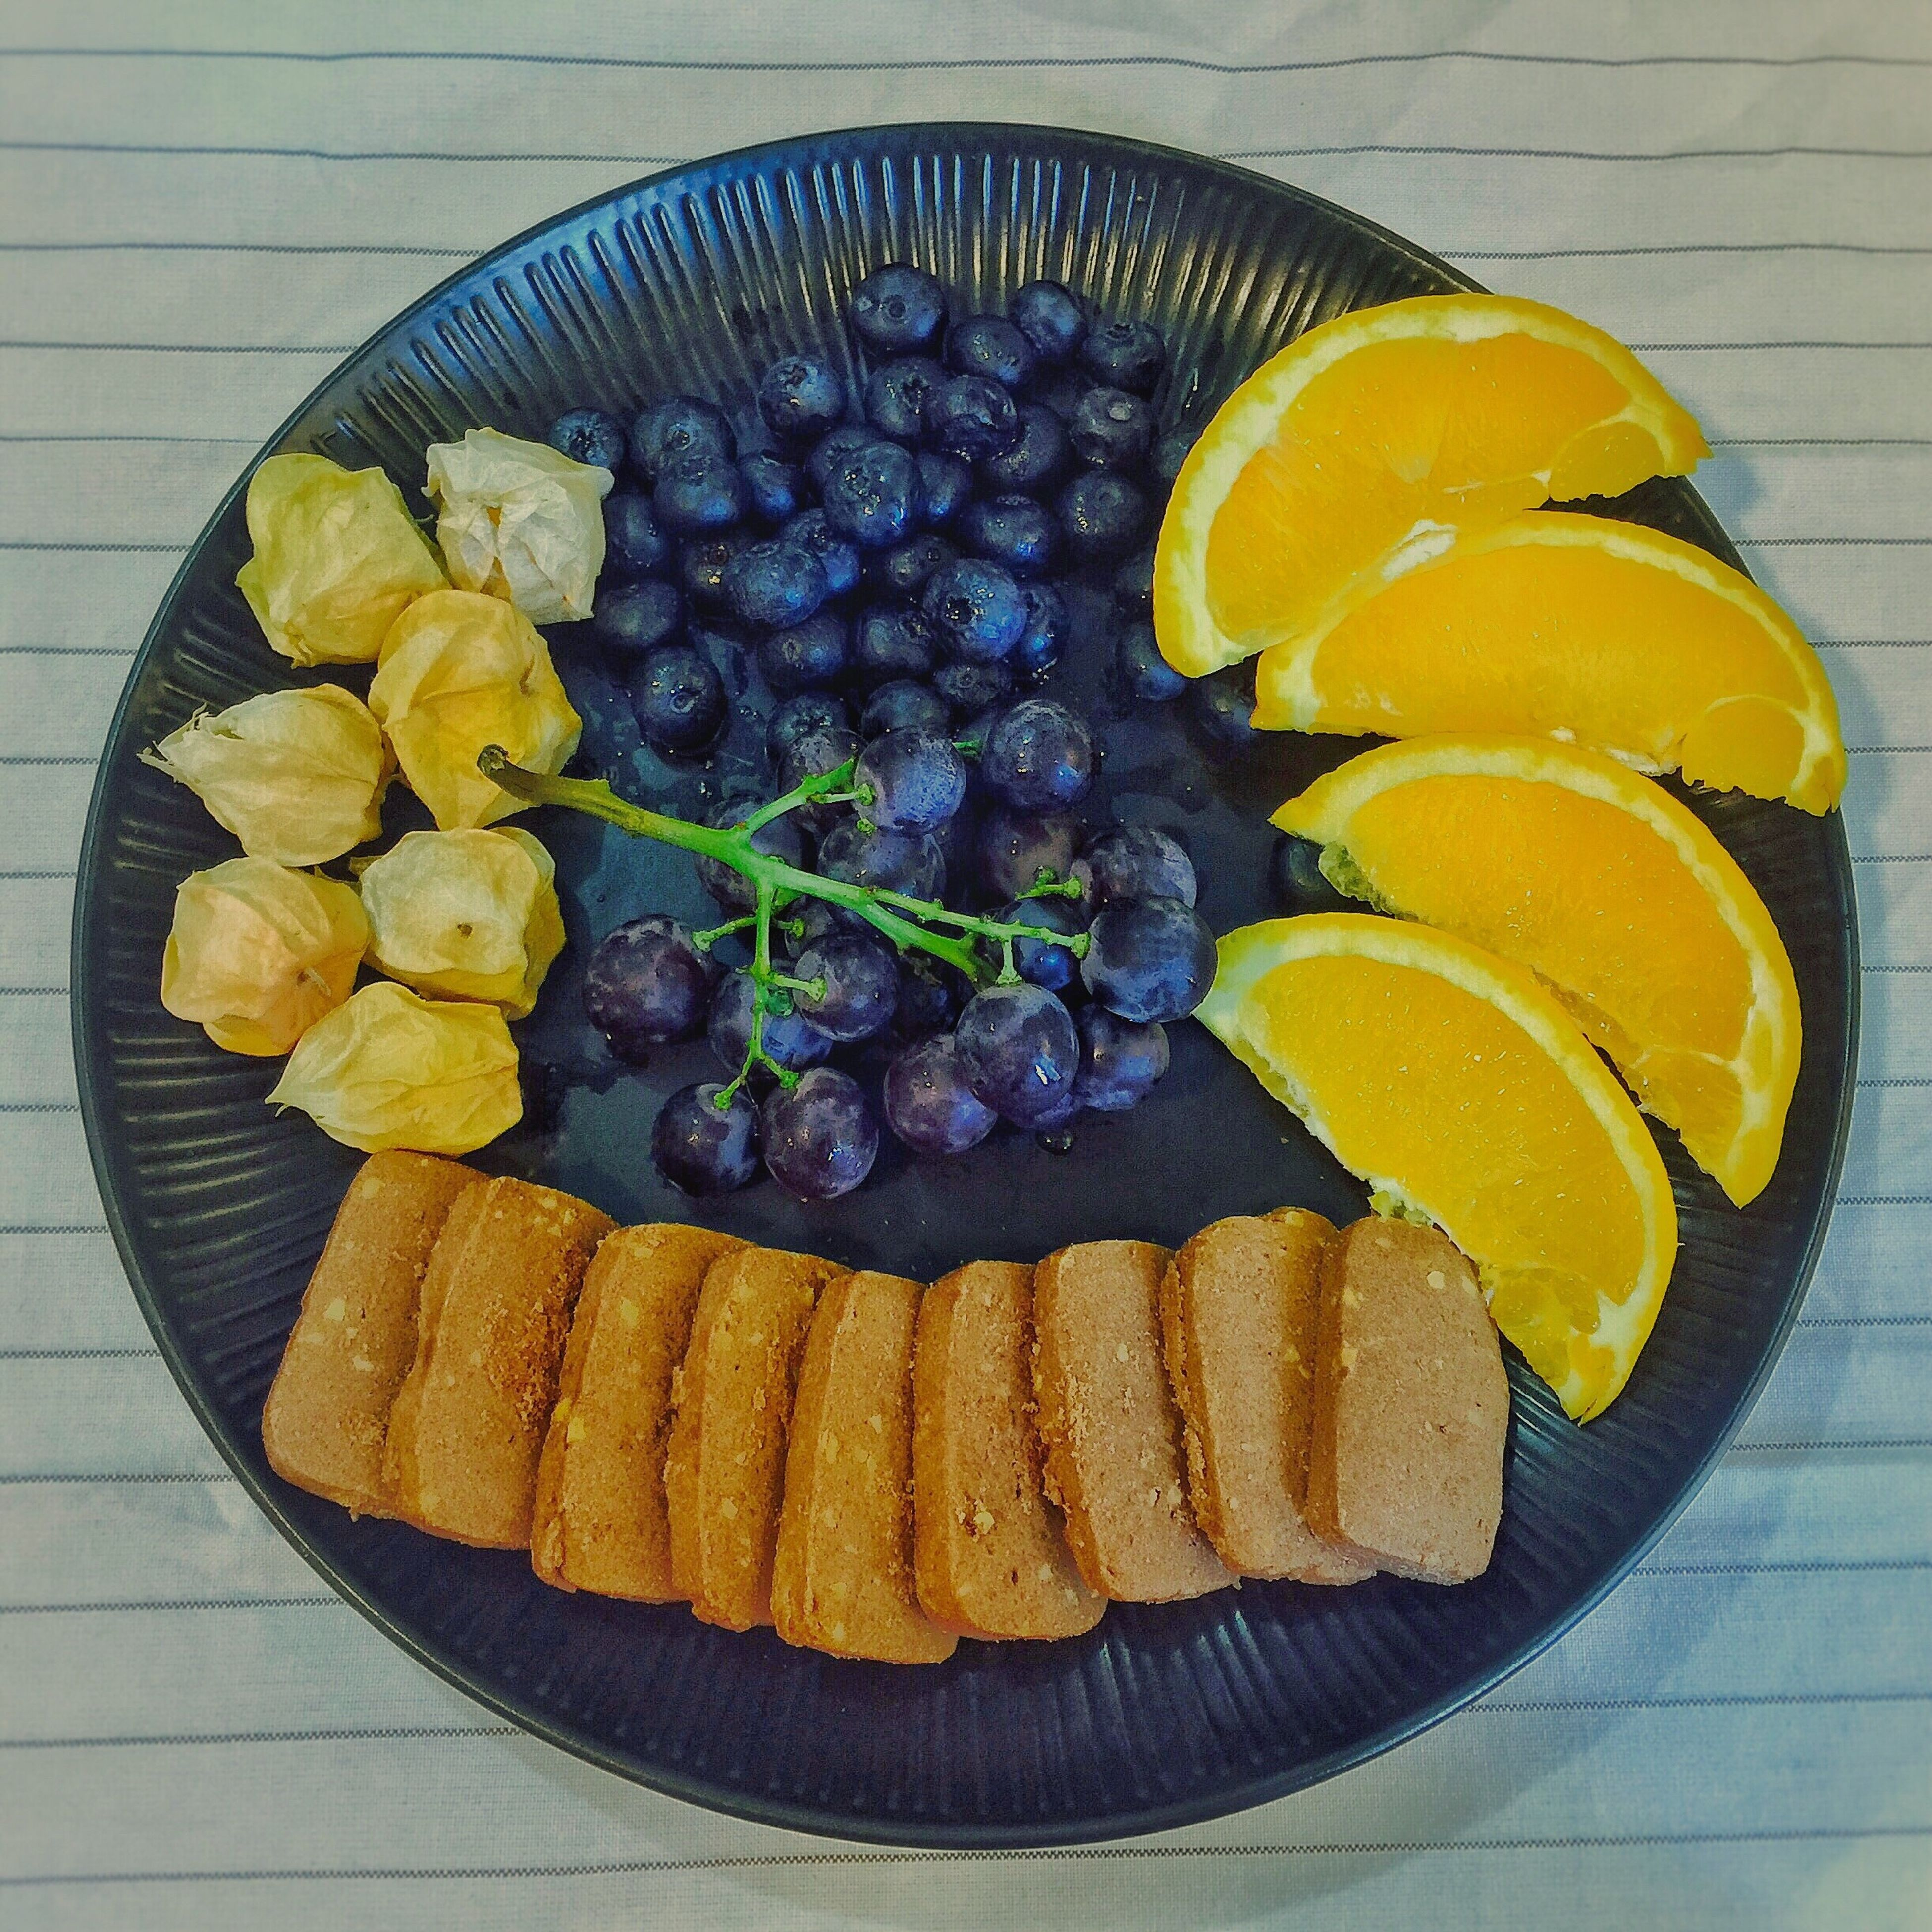 food and drink, fruit, yellow, food, healthy eating, freshness, indoors, directly above, citrus fruit, slice, serving size, vibrant color, large group of objects, blue, fruit salad, cross section, bunch, multi colored, indulgence